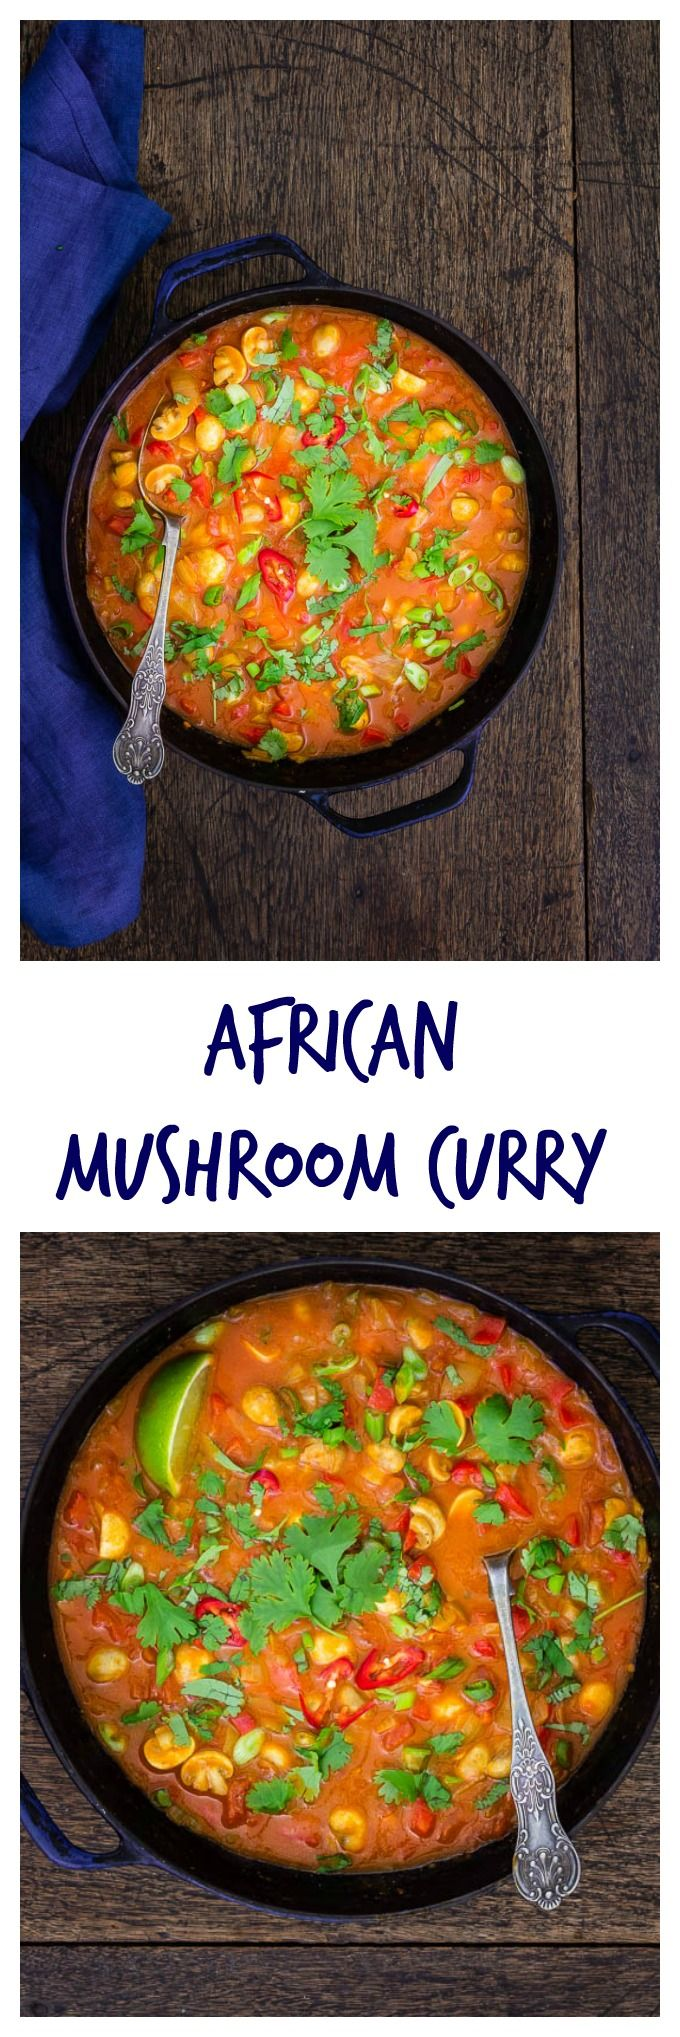 Tanzanian inspired mushroom curry vegan recipe mushroom curry african mushroom curry recipes from a pantry forumfinder Gallery